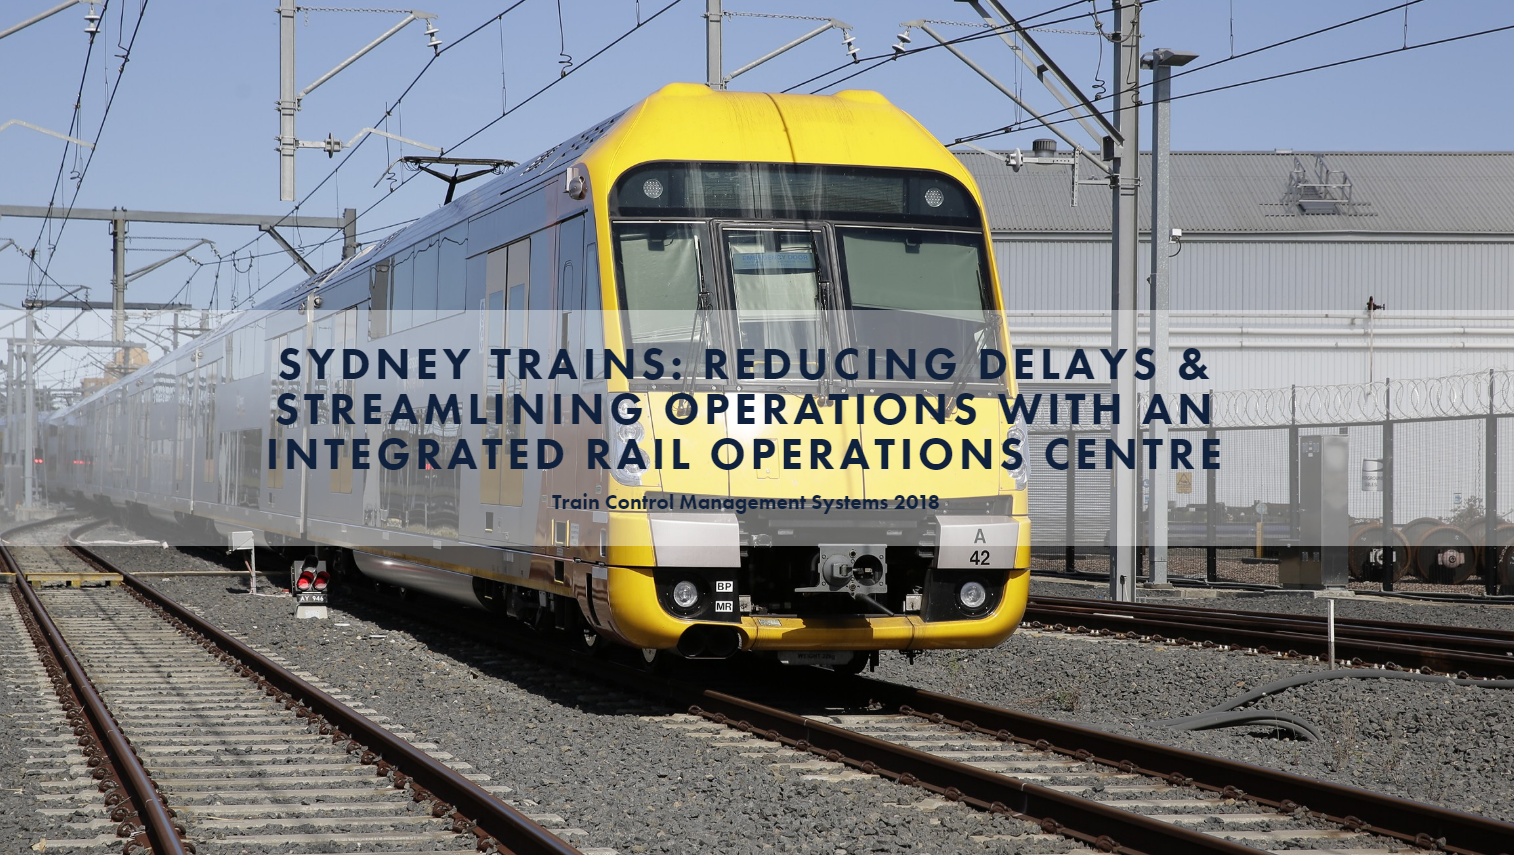 Sydney Trains: Reducing Delays, Streamlining Operations & Increasing Throughput with an Integrated Rail Operations Centre